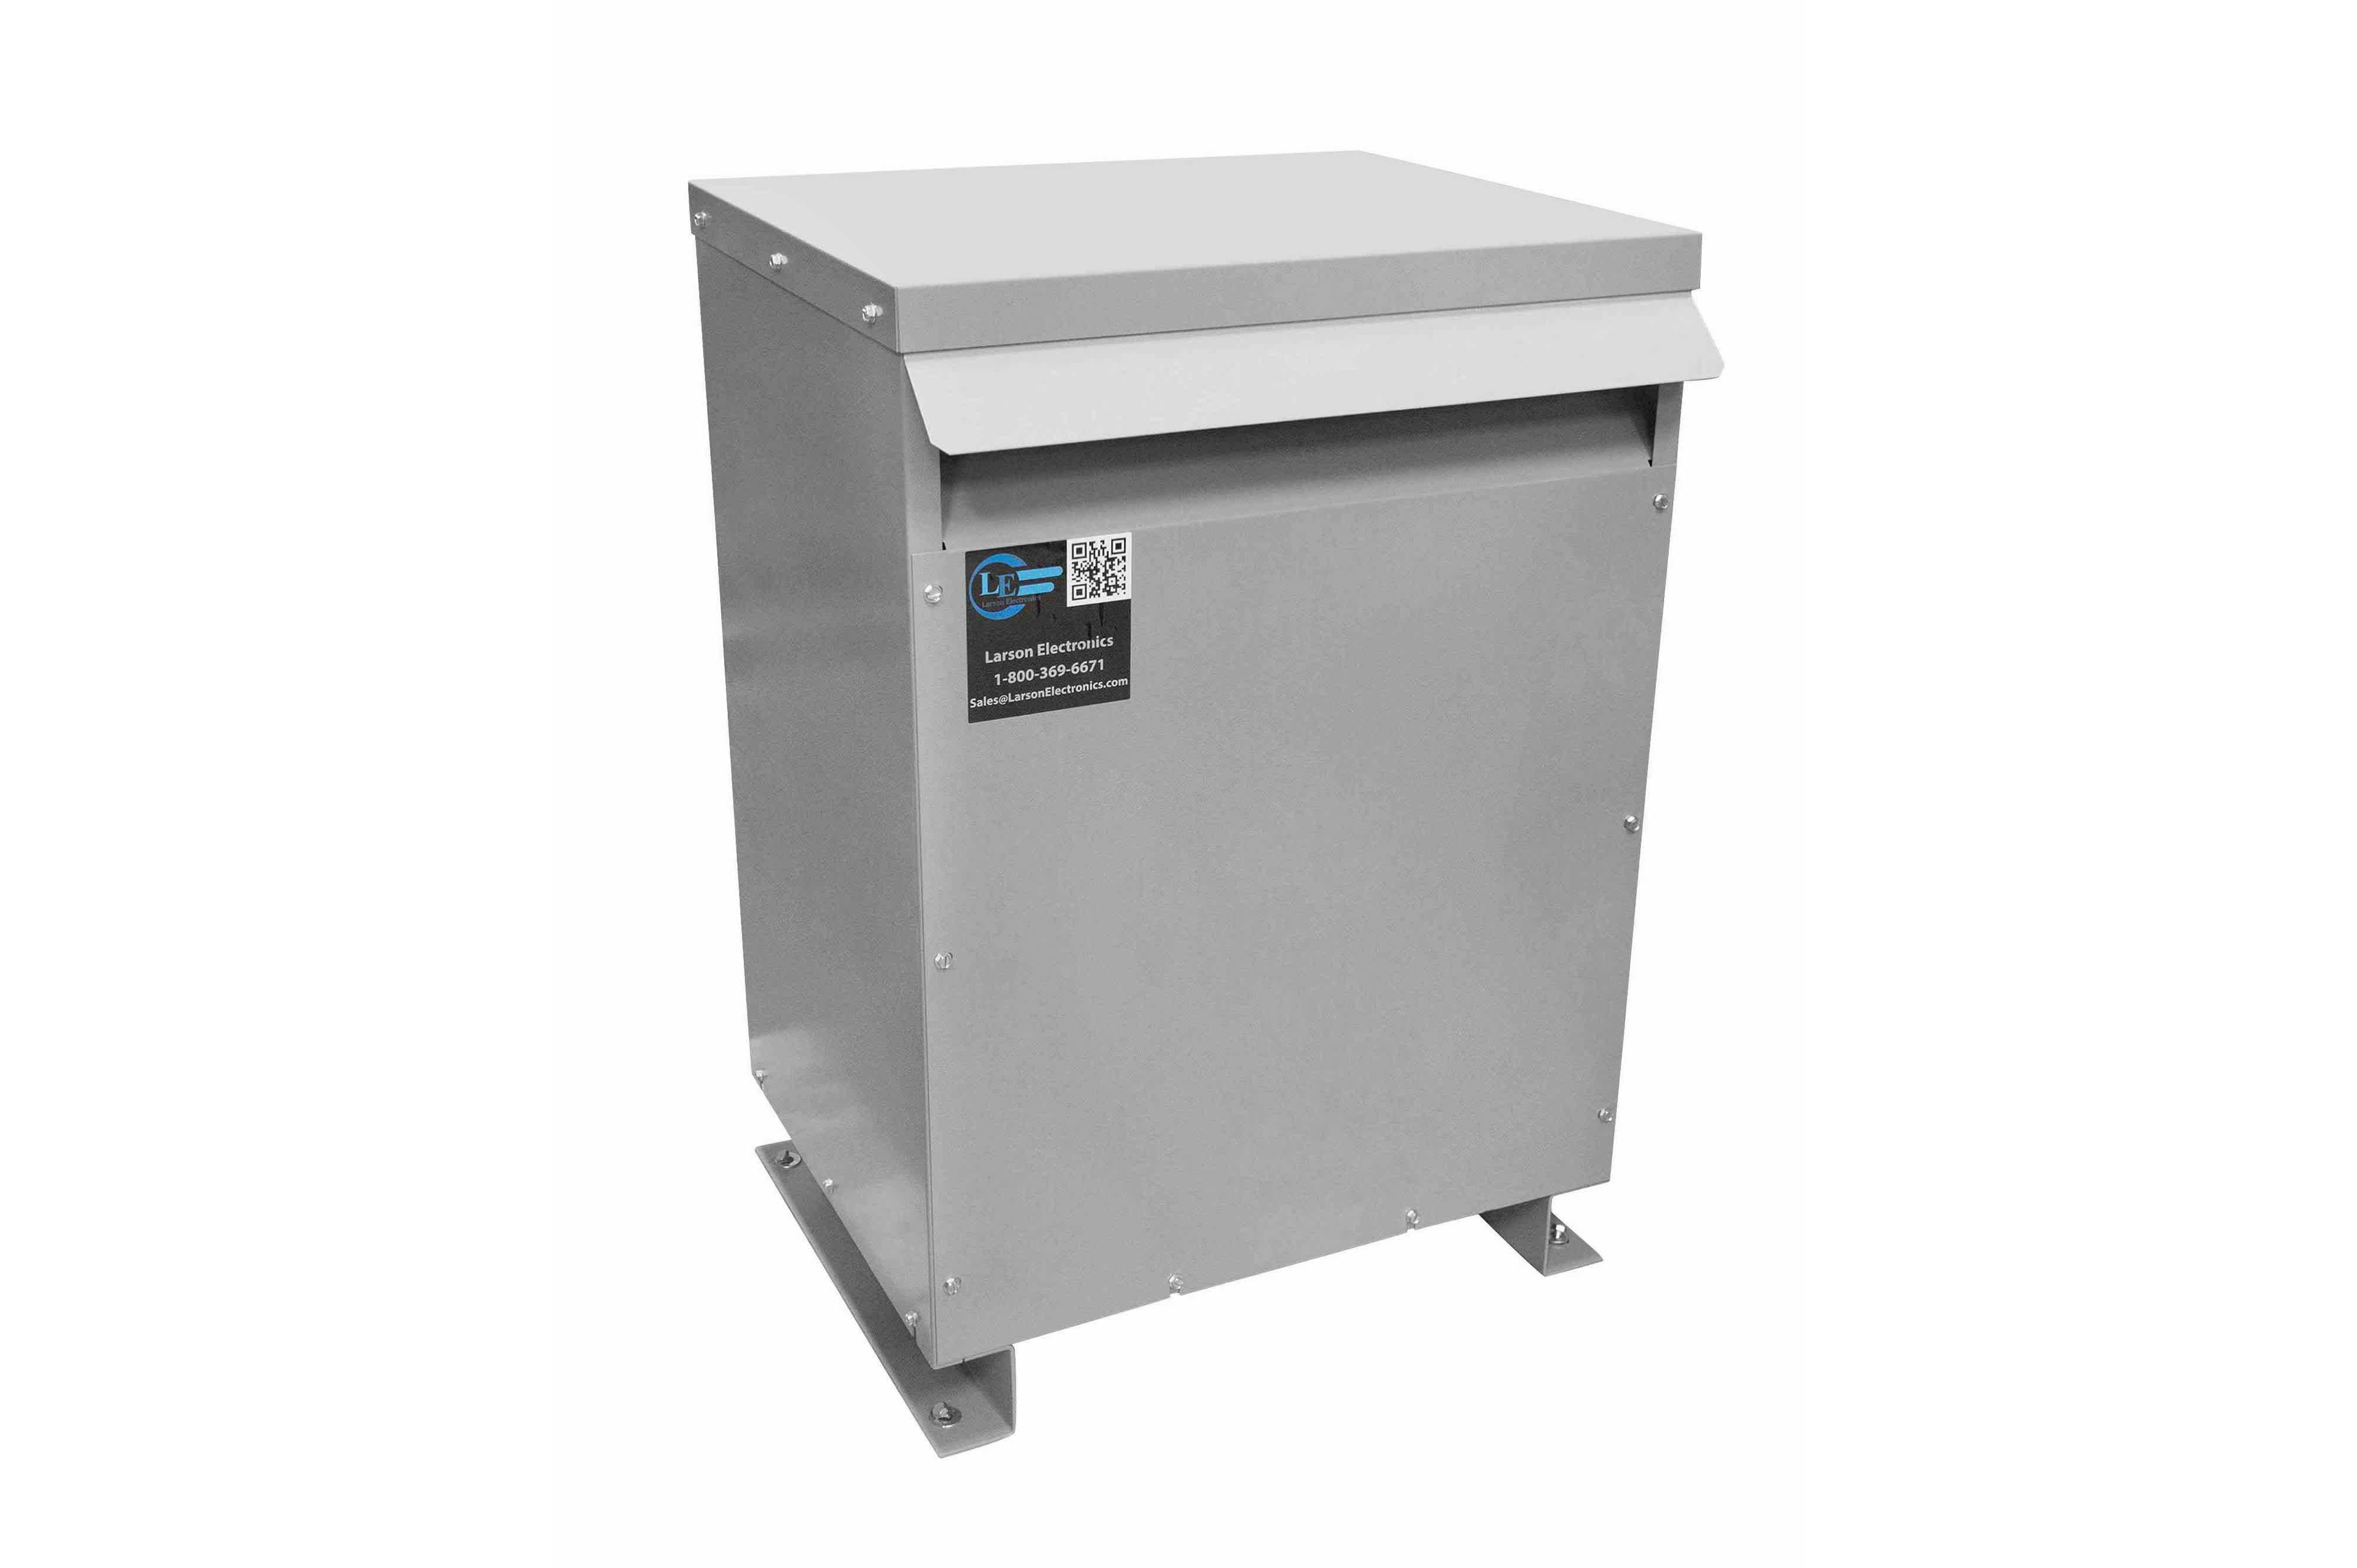 35 kVA 3PH Isolation Transformer, 208V Wye Primary, 240V/120 Delta Secondary, N3R, Ventilated, 60 Hz